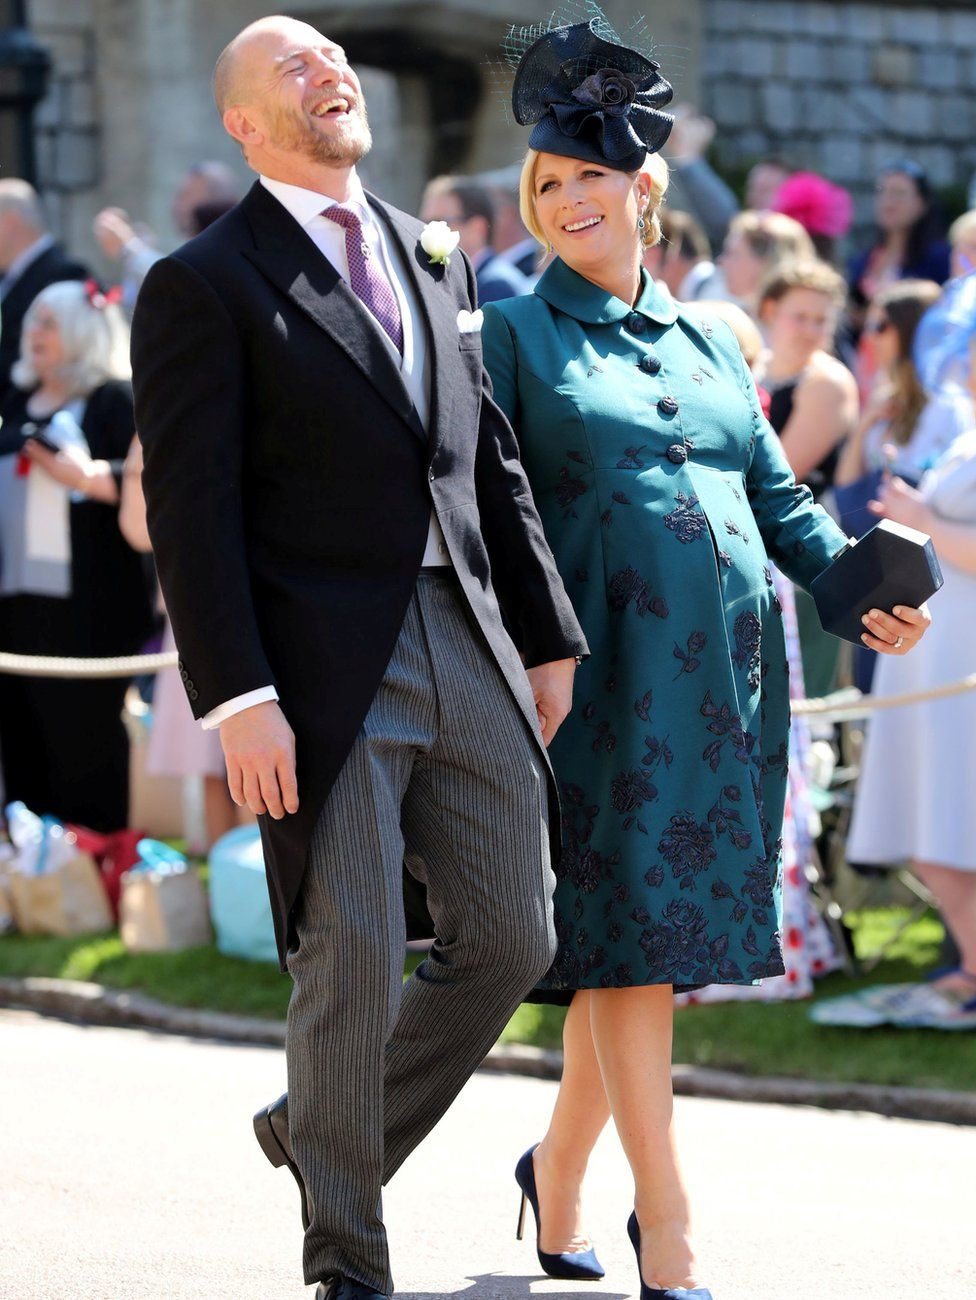 Mike Tindall and Zara Tindall arrive for the wedding of Meghan Markle and Prince Harry